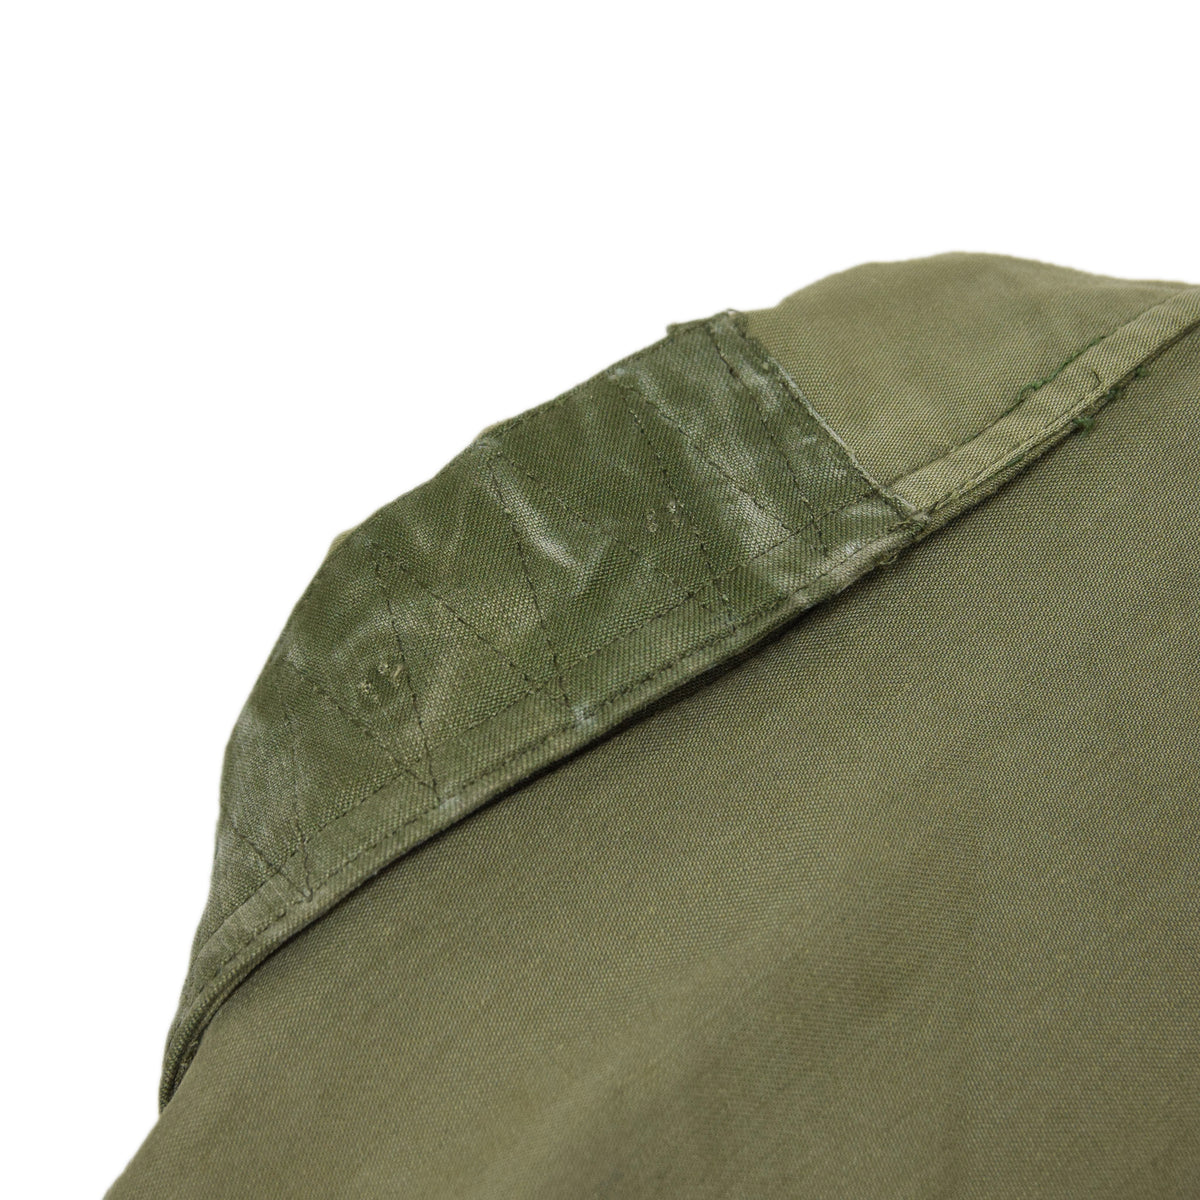 Vintage 80s US Military Darned Fine Reworked A-2 Deck Jacket M collar detail